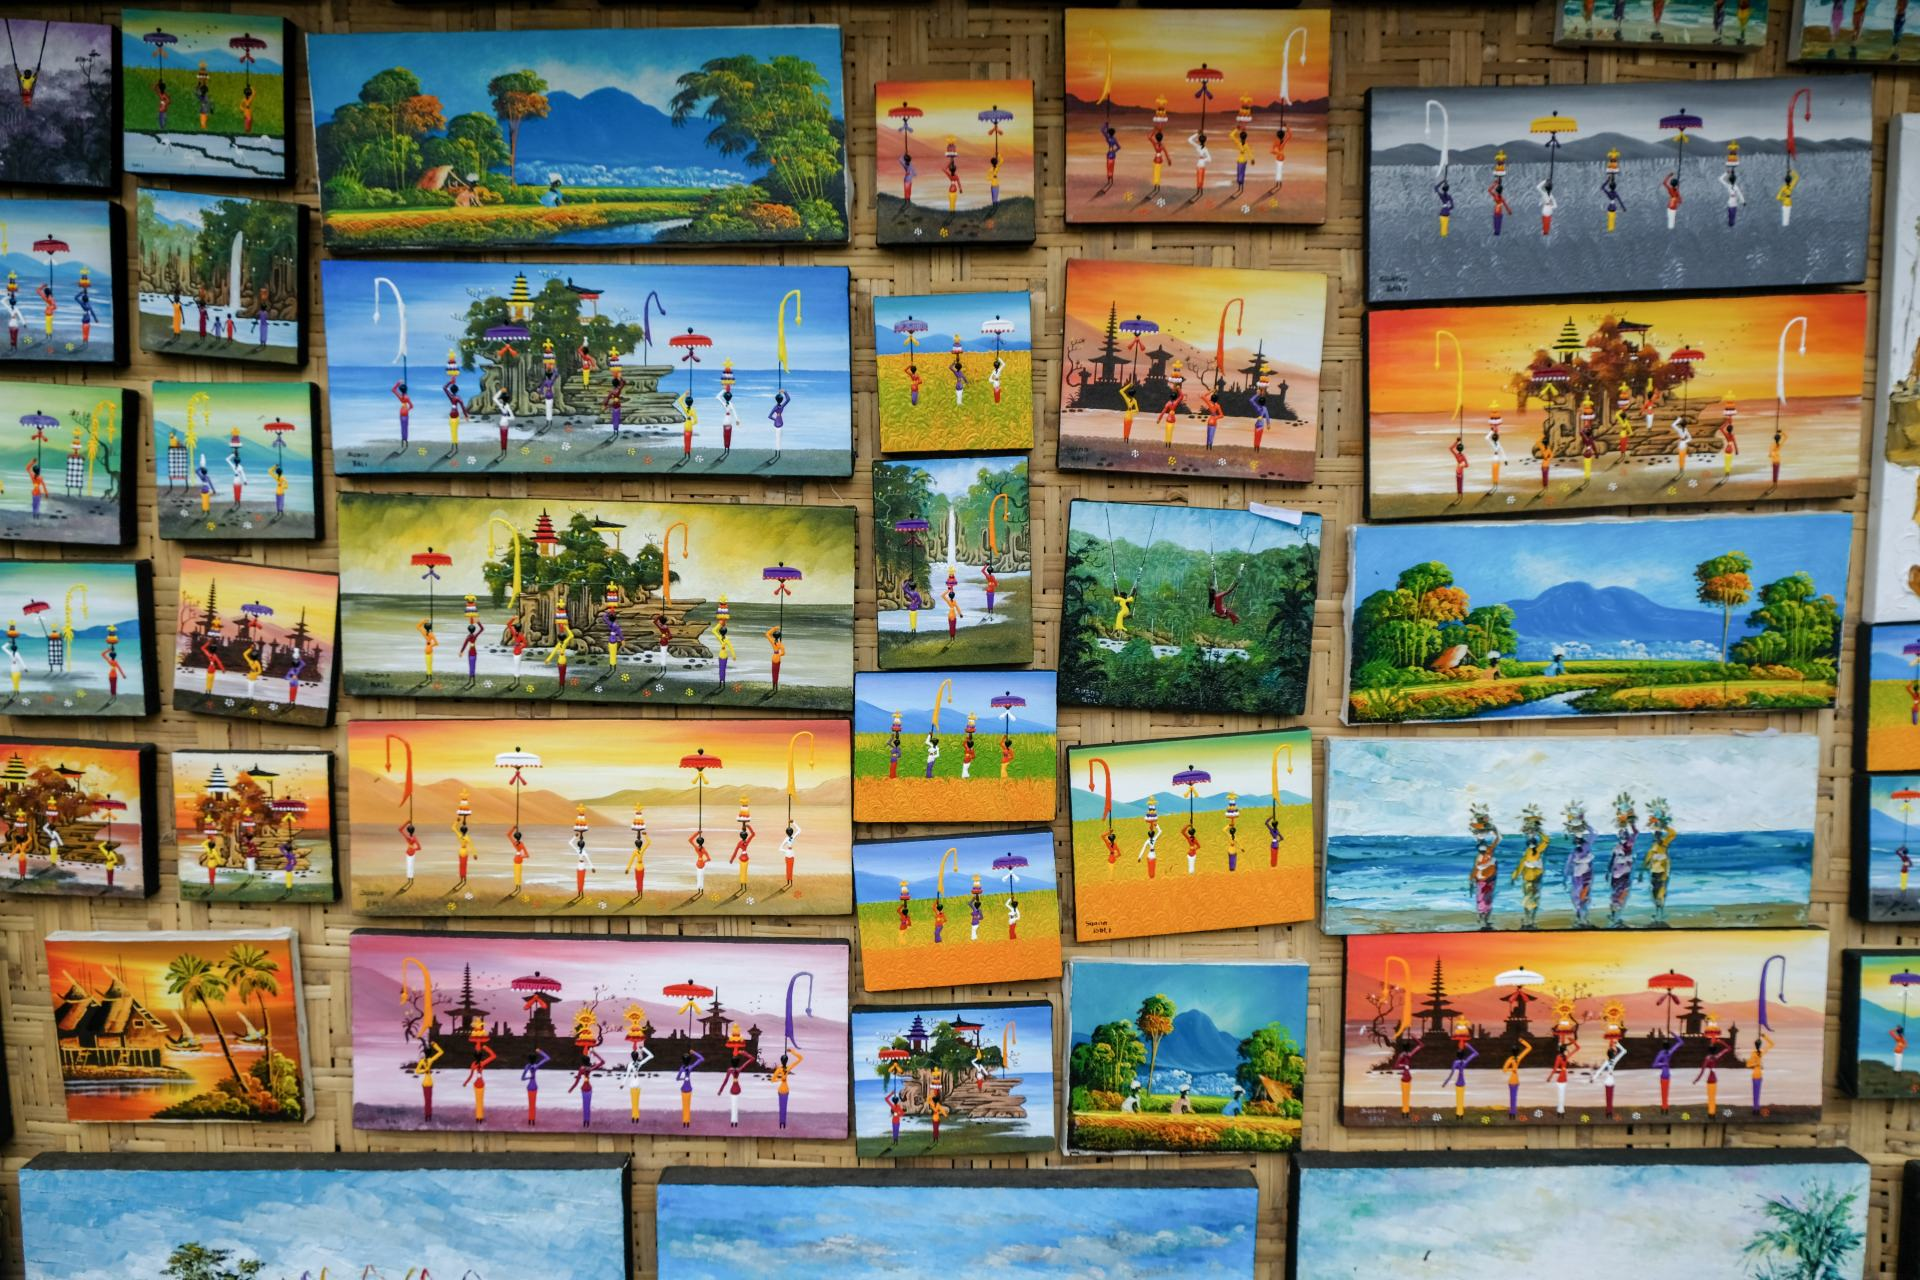 artwork at the bali swing